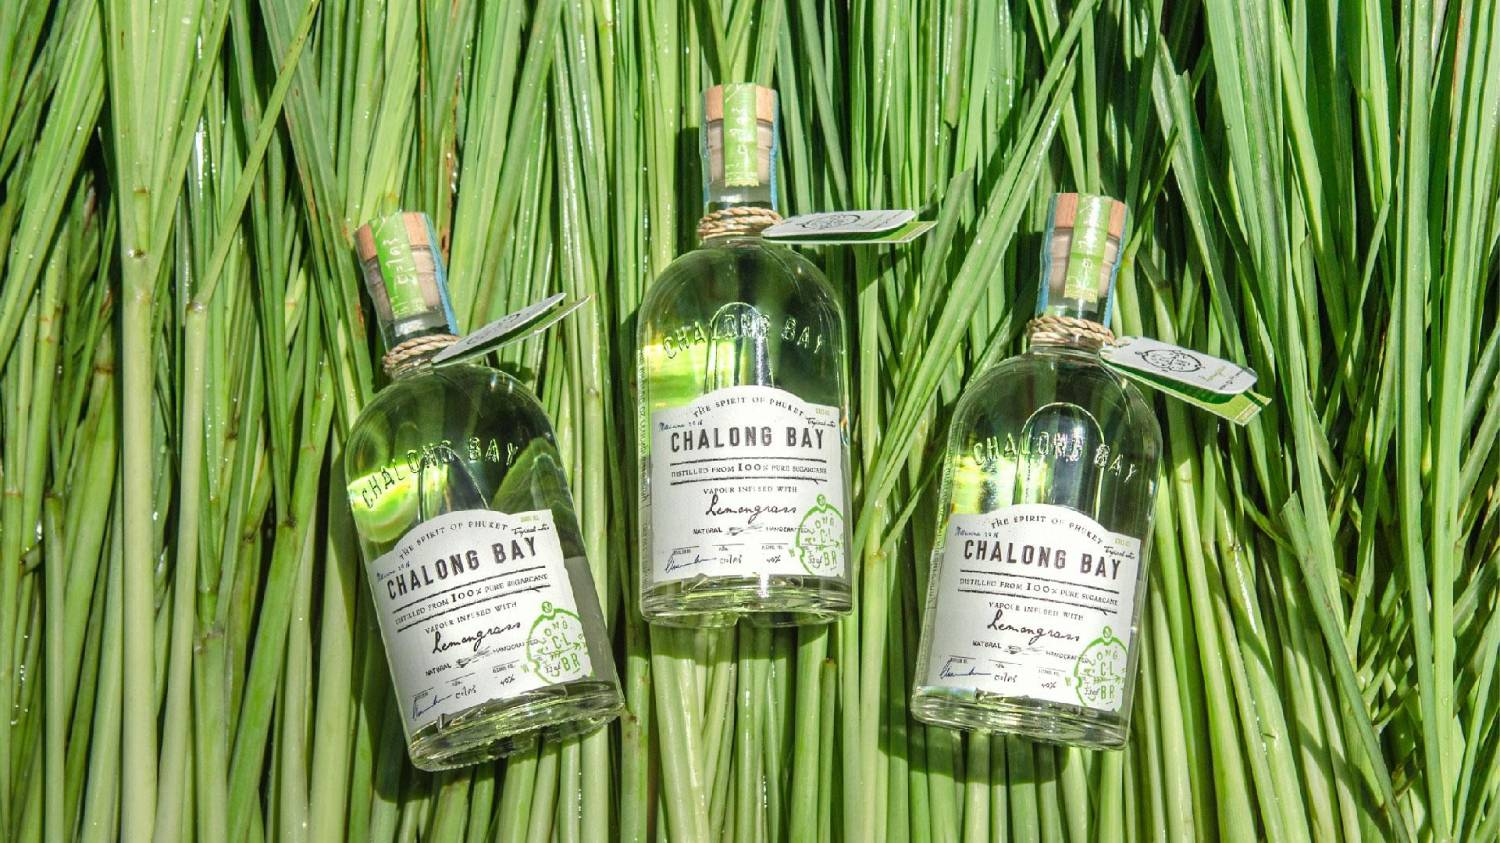 Chalong Bay Rum Distillery - Things To Do In Phuket